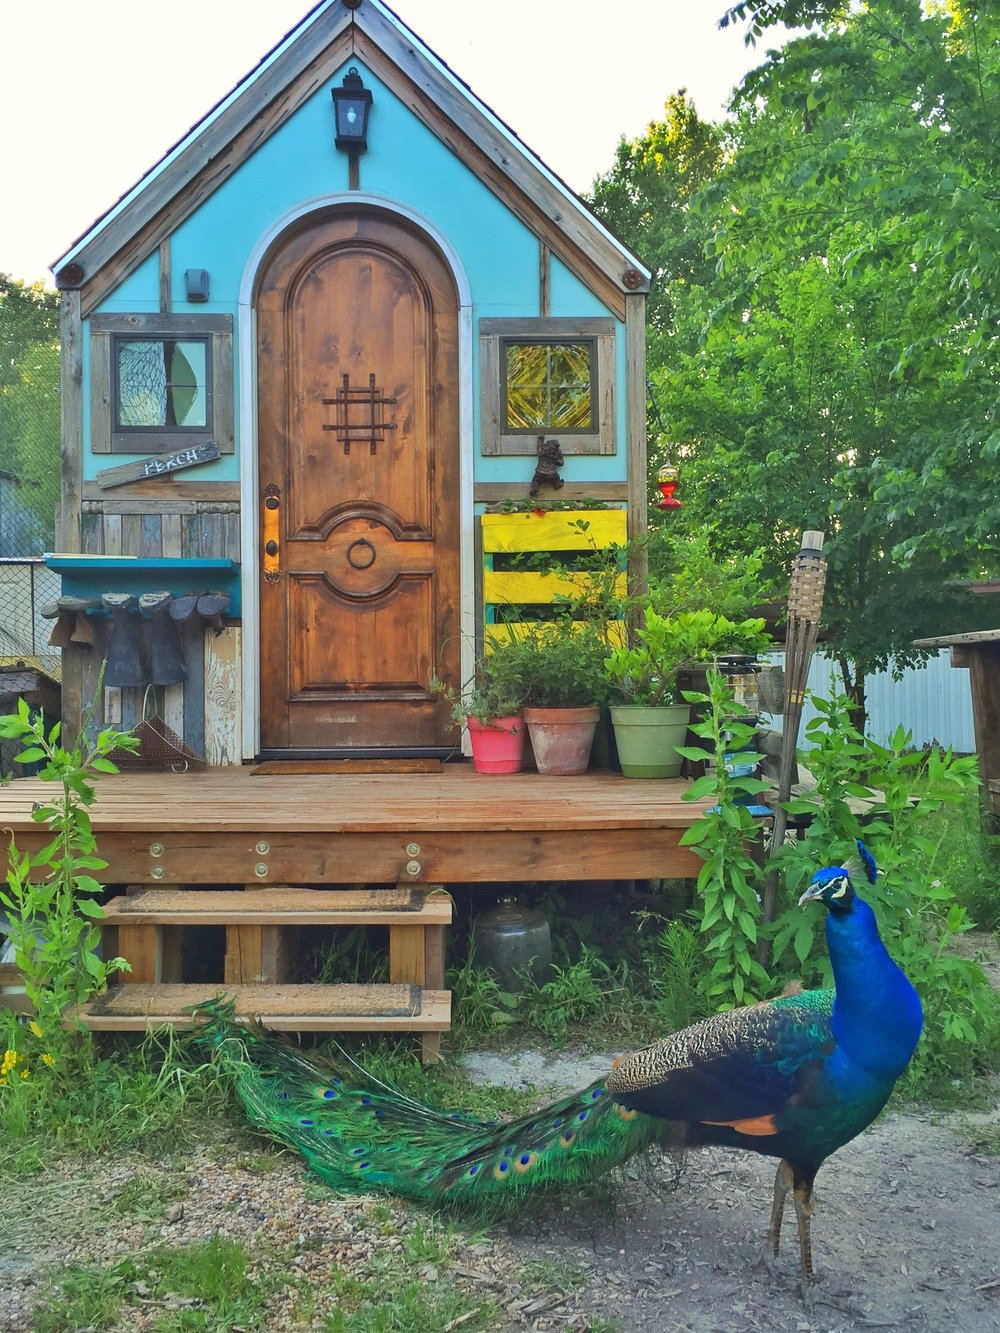 Some of Zack's handy work, As Featured on Tiny House Nation.  192 Sq. FT. Bird House, S2 E 6 , also known as The Window to the Wild tiny house